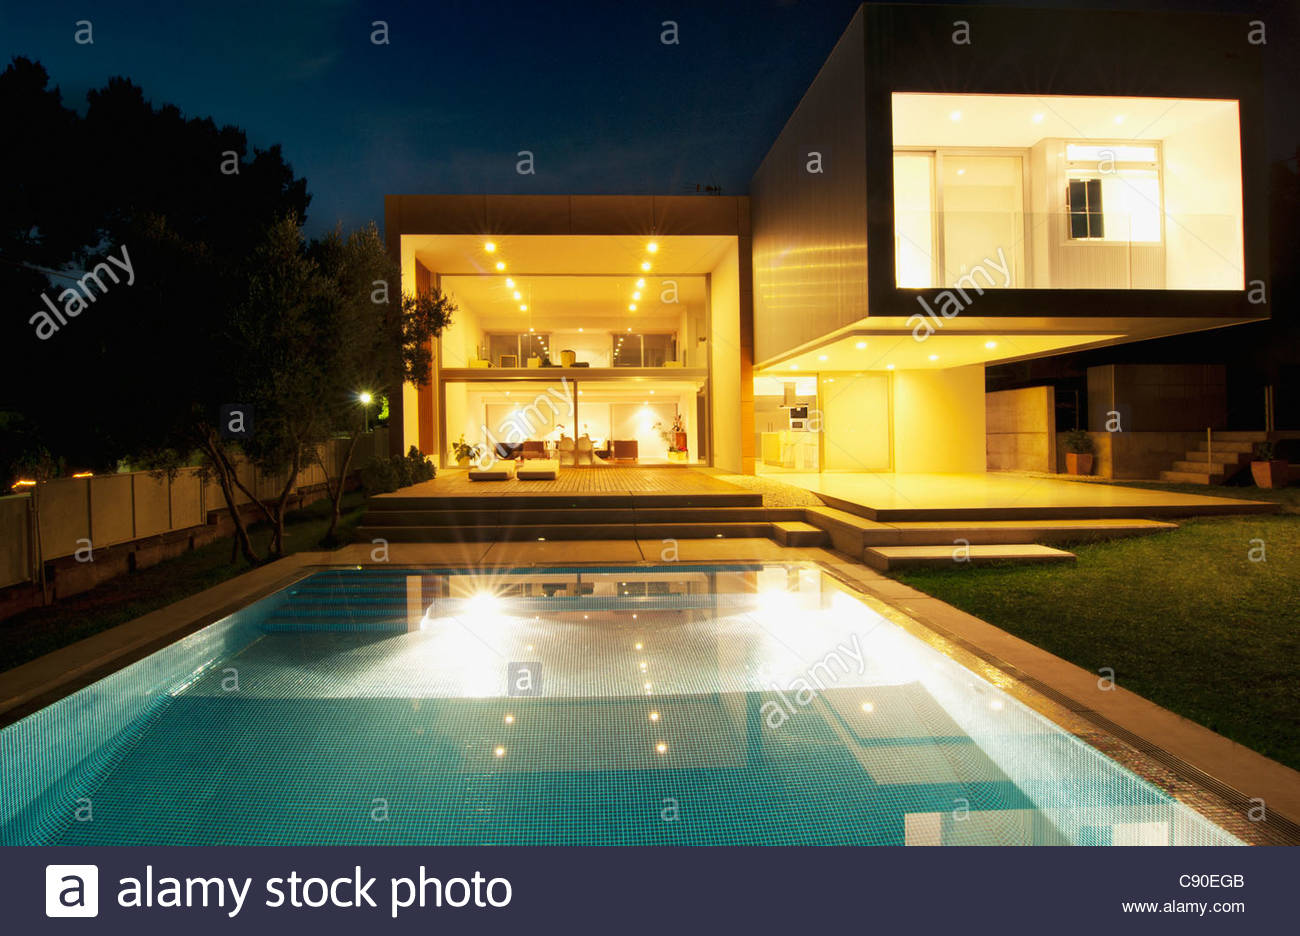 Pool outside modern house at night - Stock Image